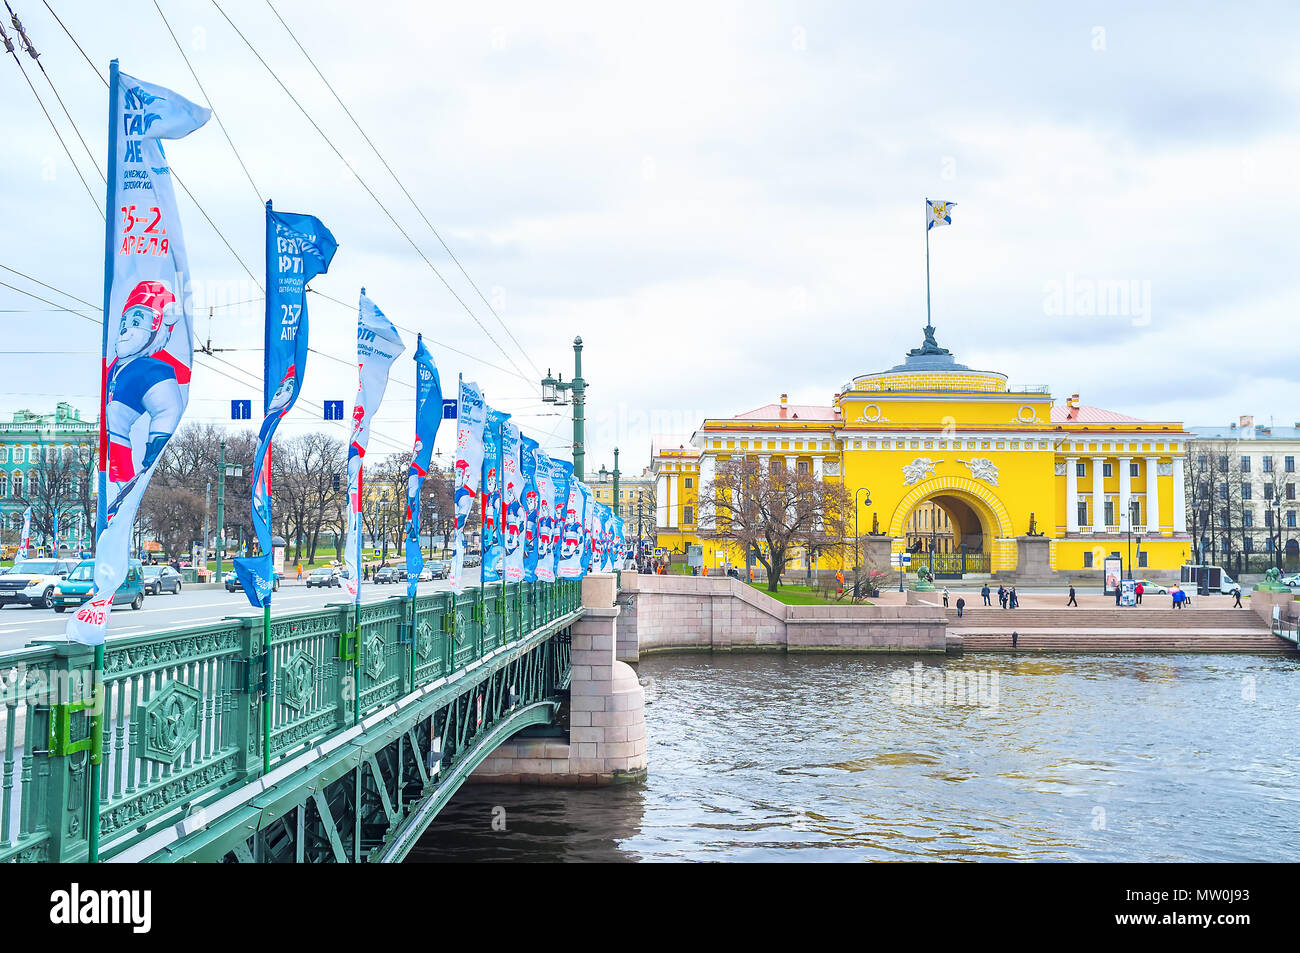 SAINT PETERSBURG, RUSSIA - APRIL 26, 2015: The Palace Bridge is one of the most beautiful bridges of the city, that neighbors with Winter Palace and A Stock Photo